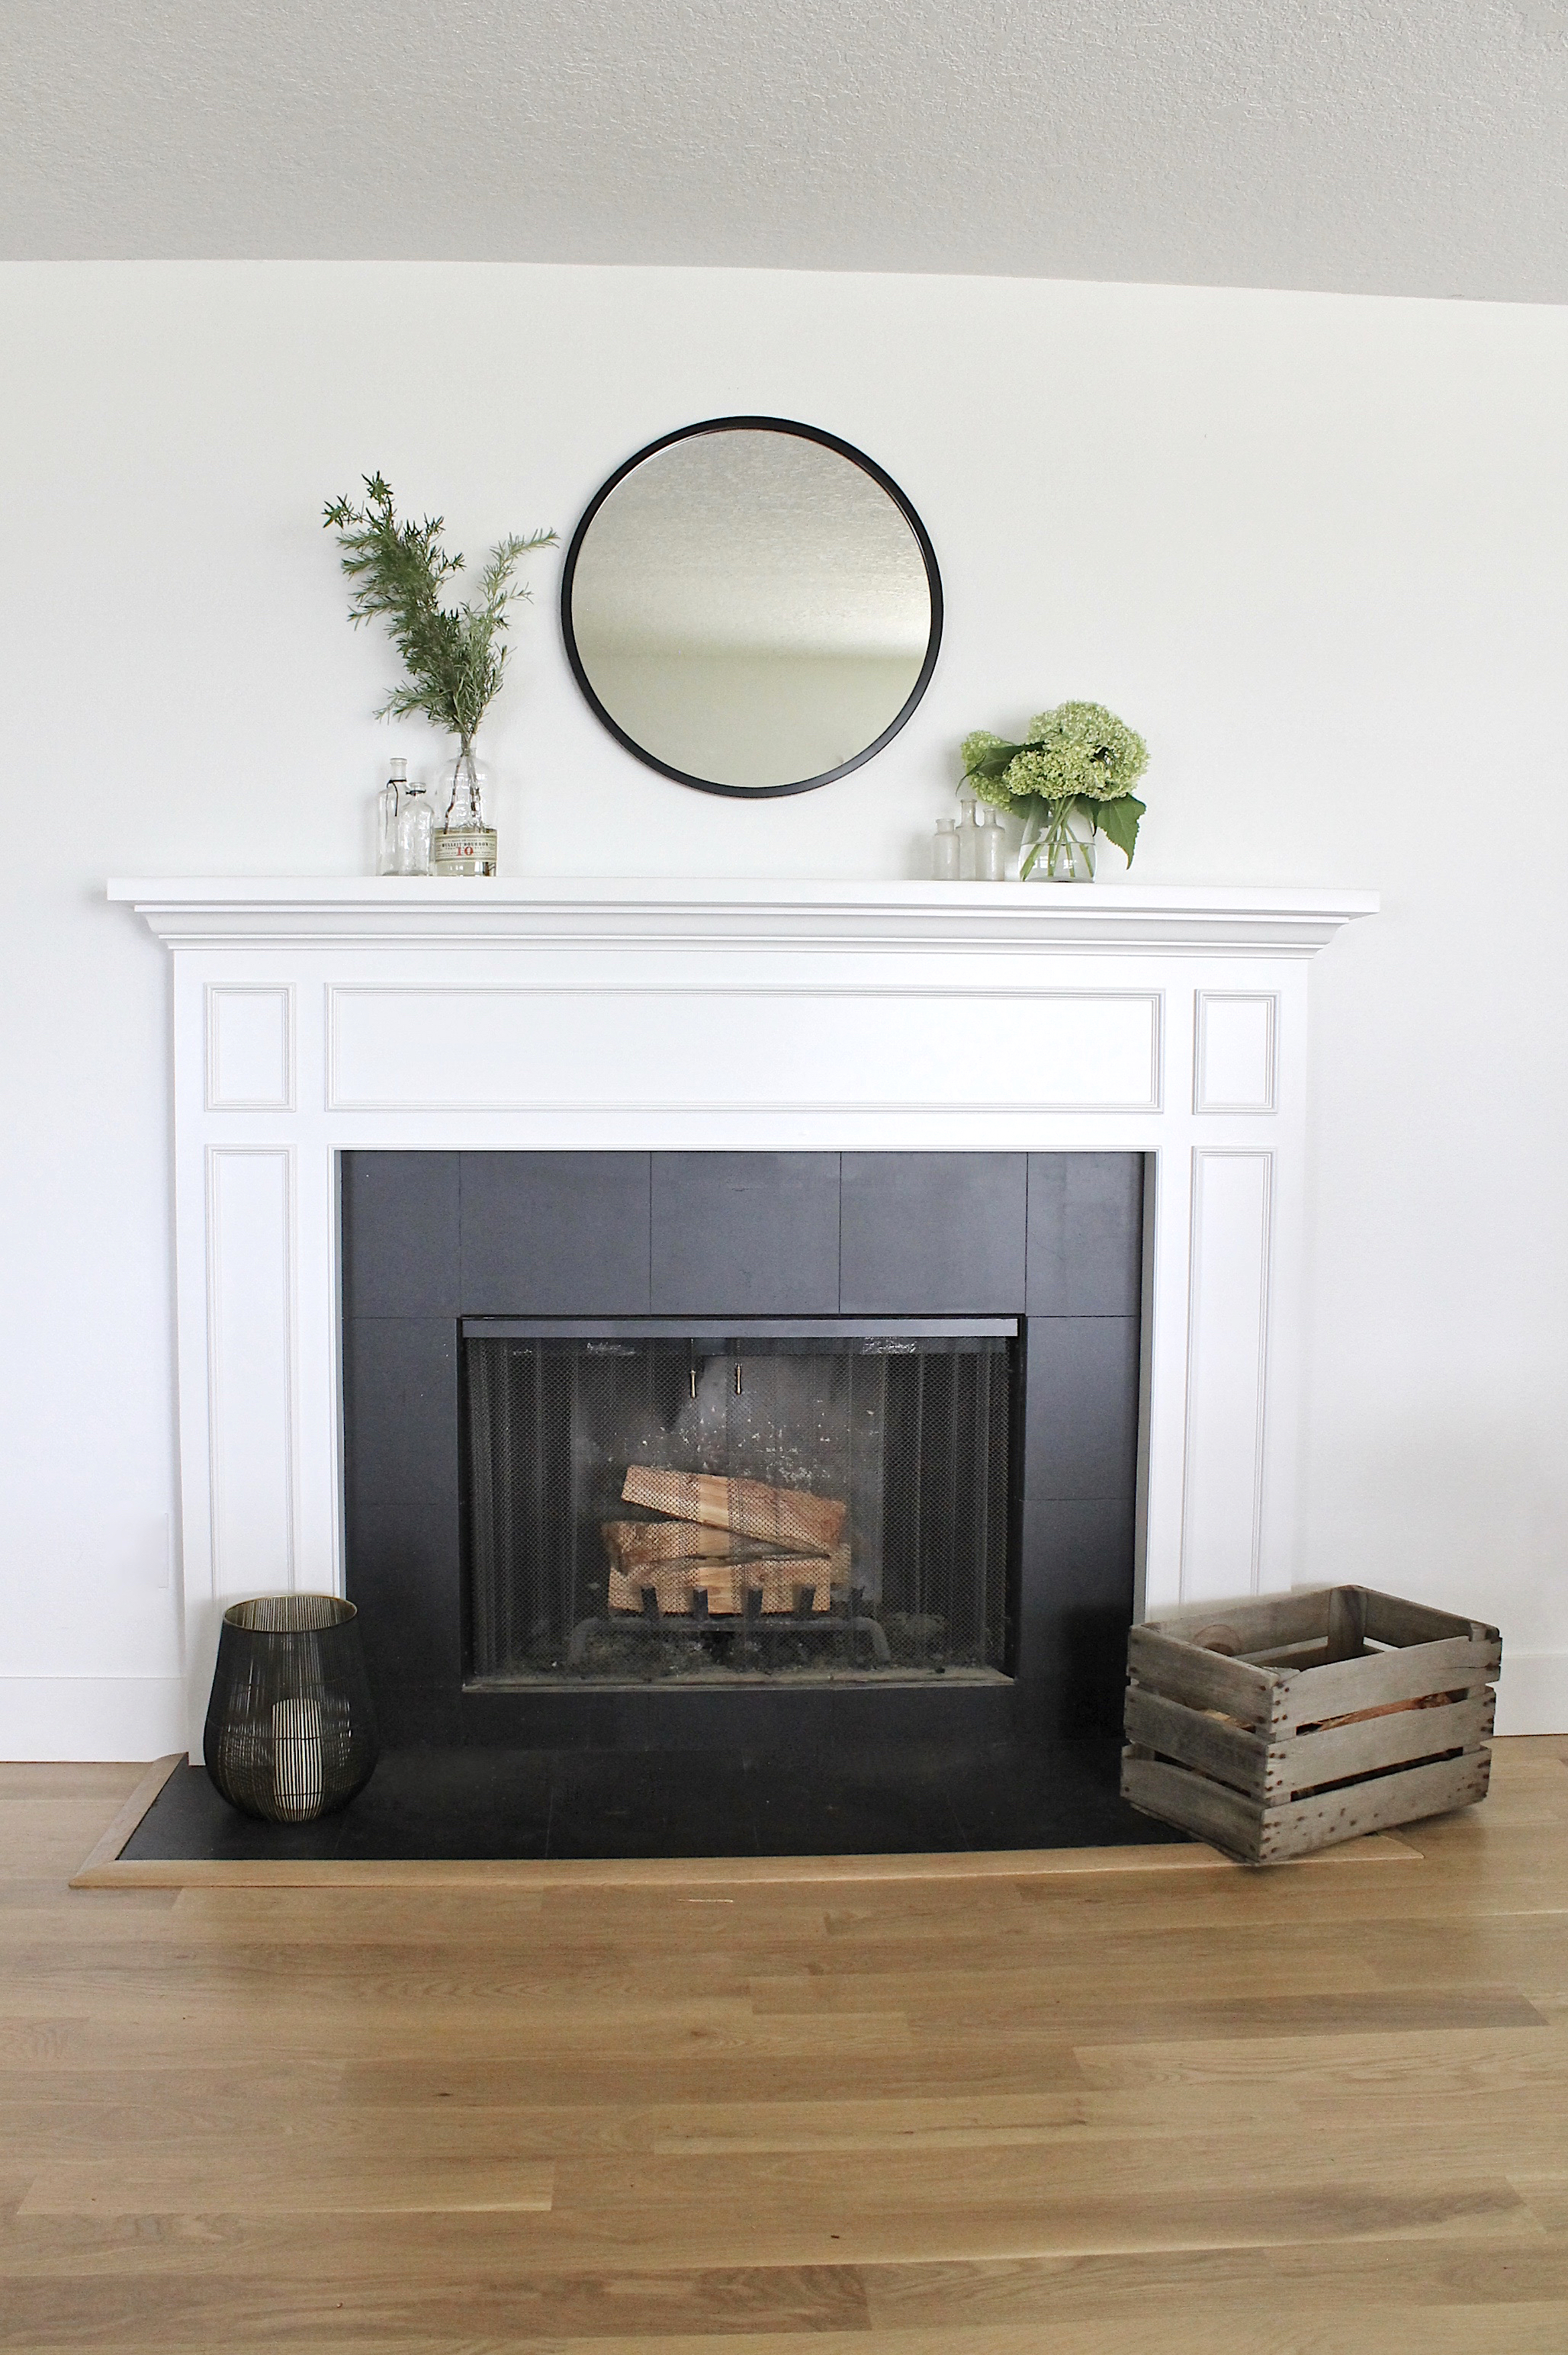 How To Paint A Ceramic Tile Fireplace For An Easy Update Allisa Jacobs